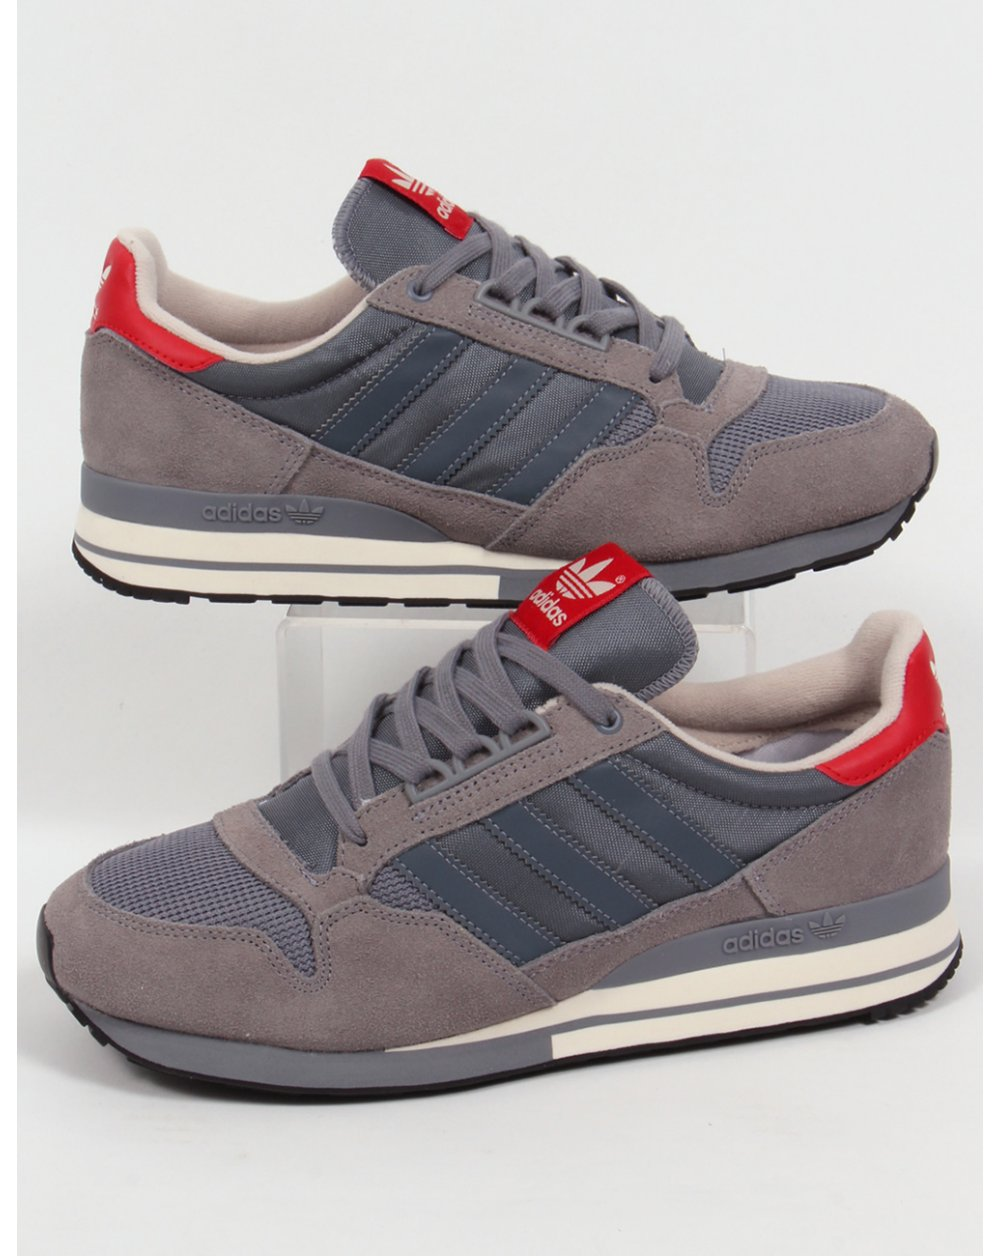 adidas zx 500 og trainers grey onix red originals shoes. Black Bedroom Furniture Sets. Home Design Ideas